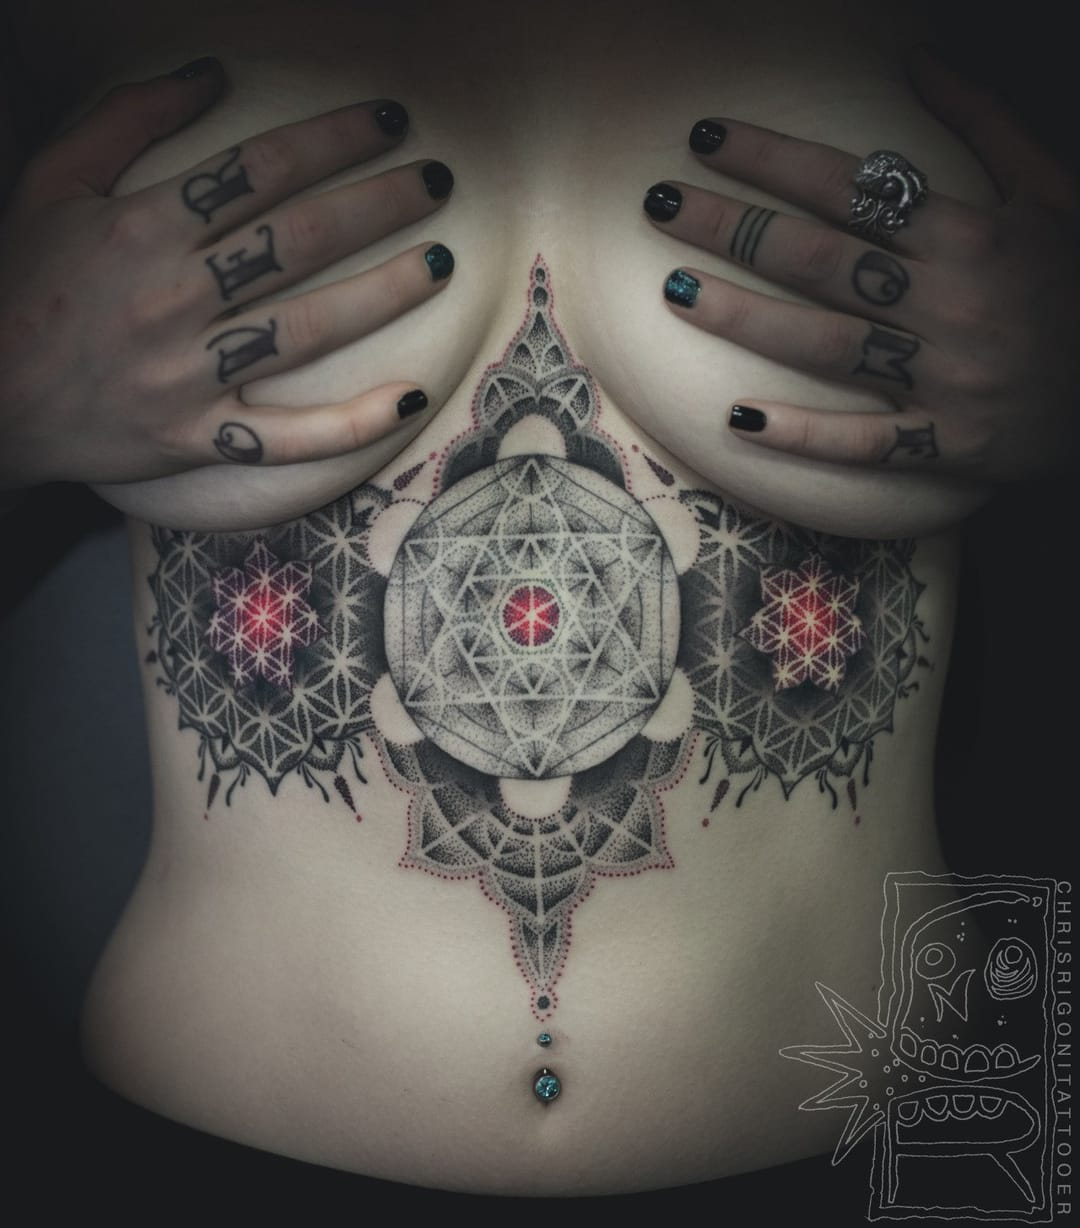 Fascinating sacred geometry underboob tattoo by Chris Rigoni...